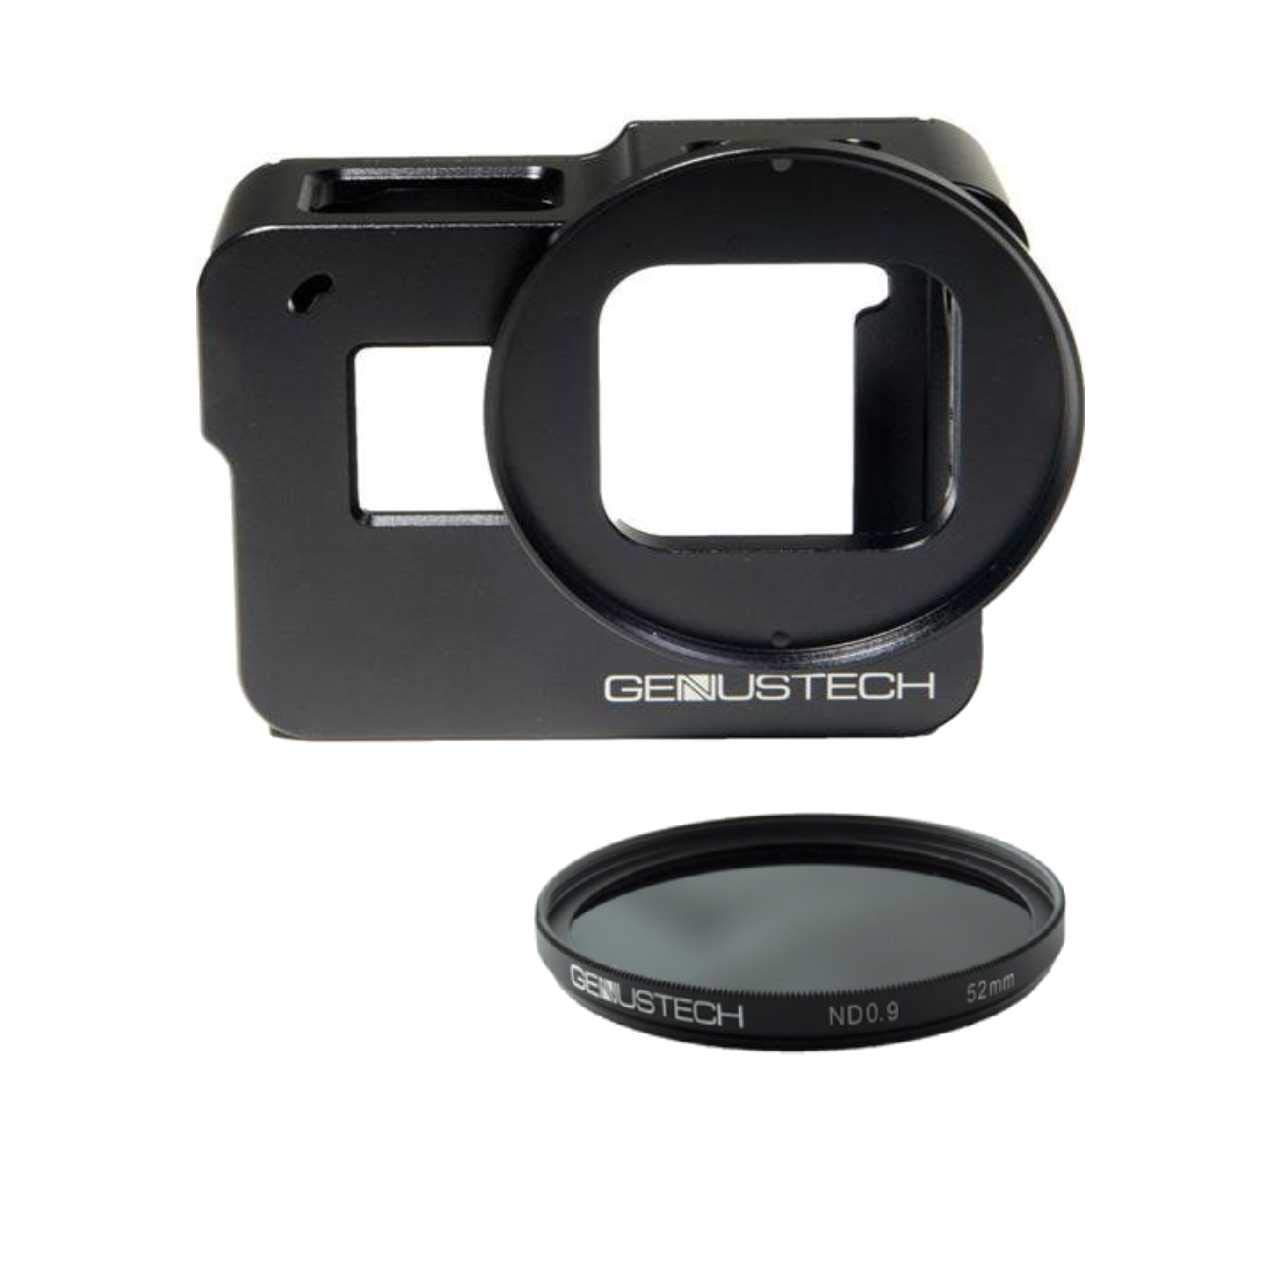 Genustech Genus Cage for GoPro HERO5, HERO6, and HERO7 Black with ND 0.9 (ND8) 52mm 3 Stop Neutral Density Filter